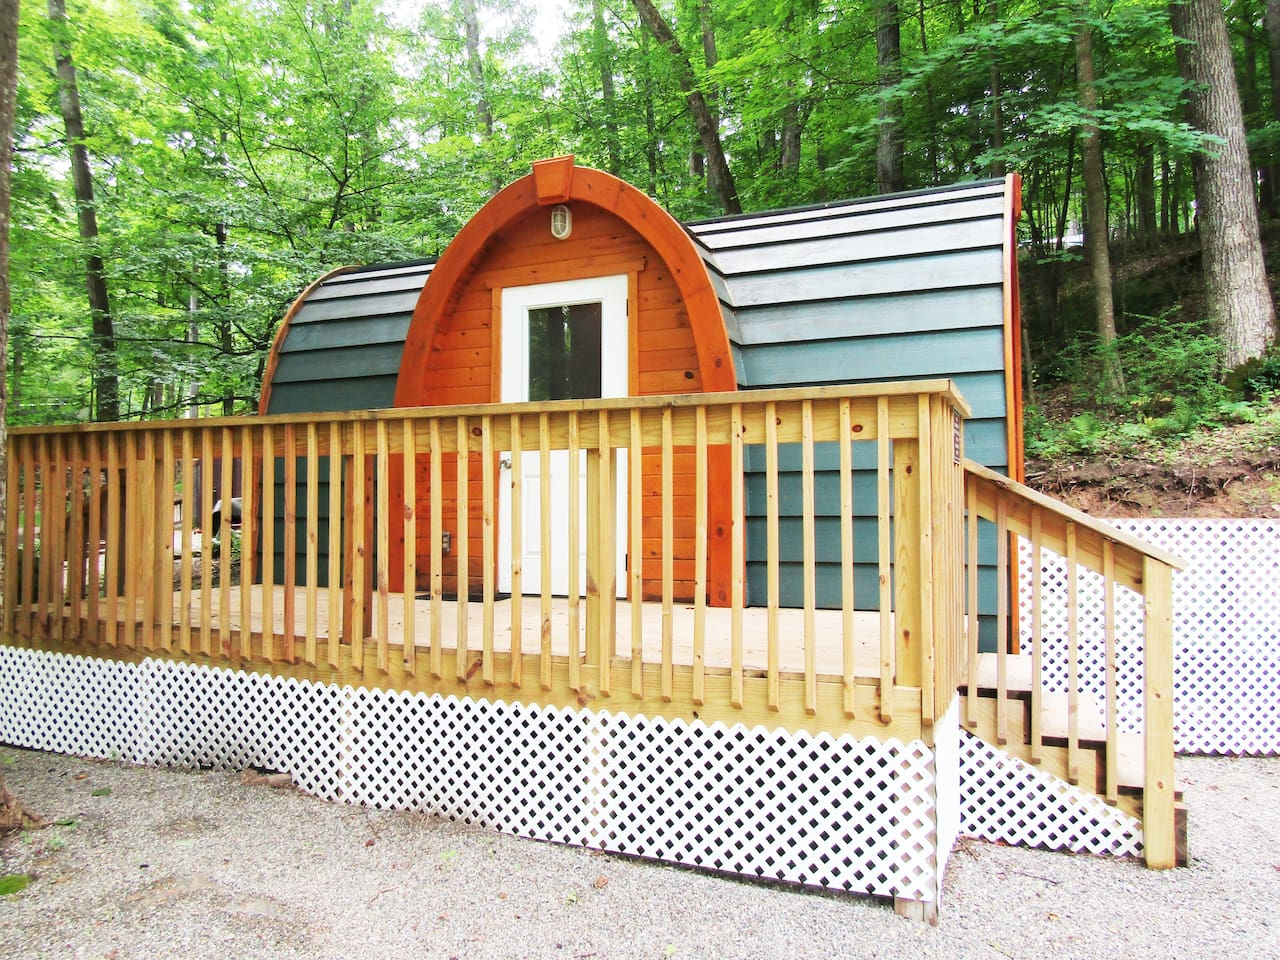 The exterior of our Hideaway Hut has a small deck for sitting.